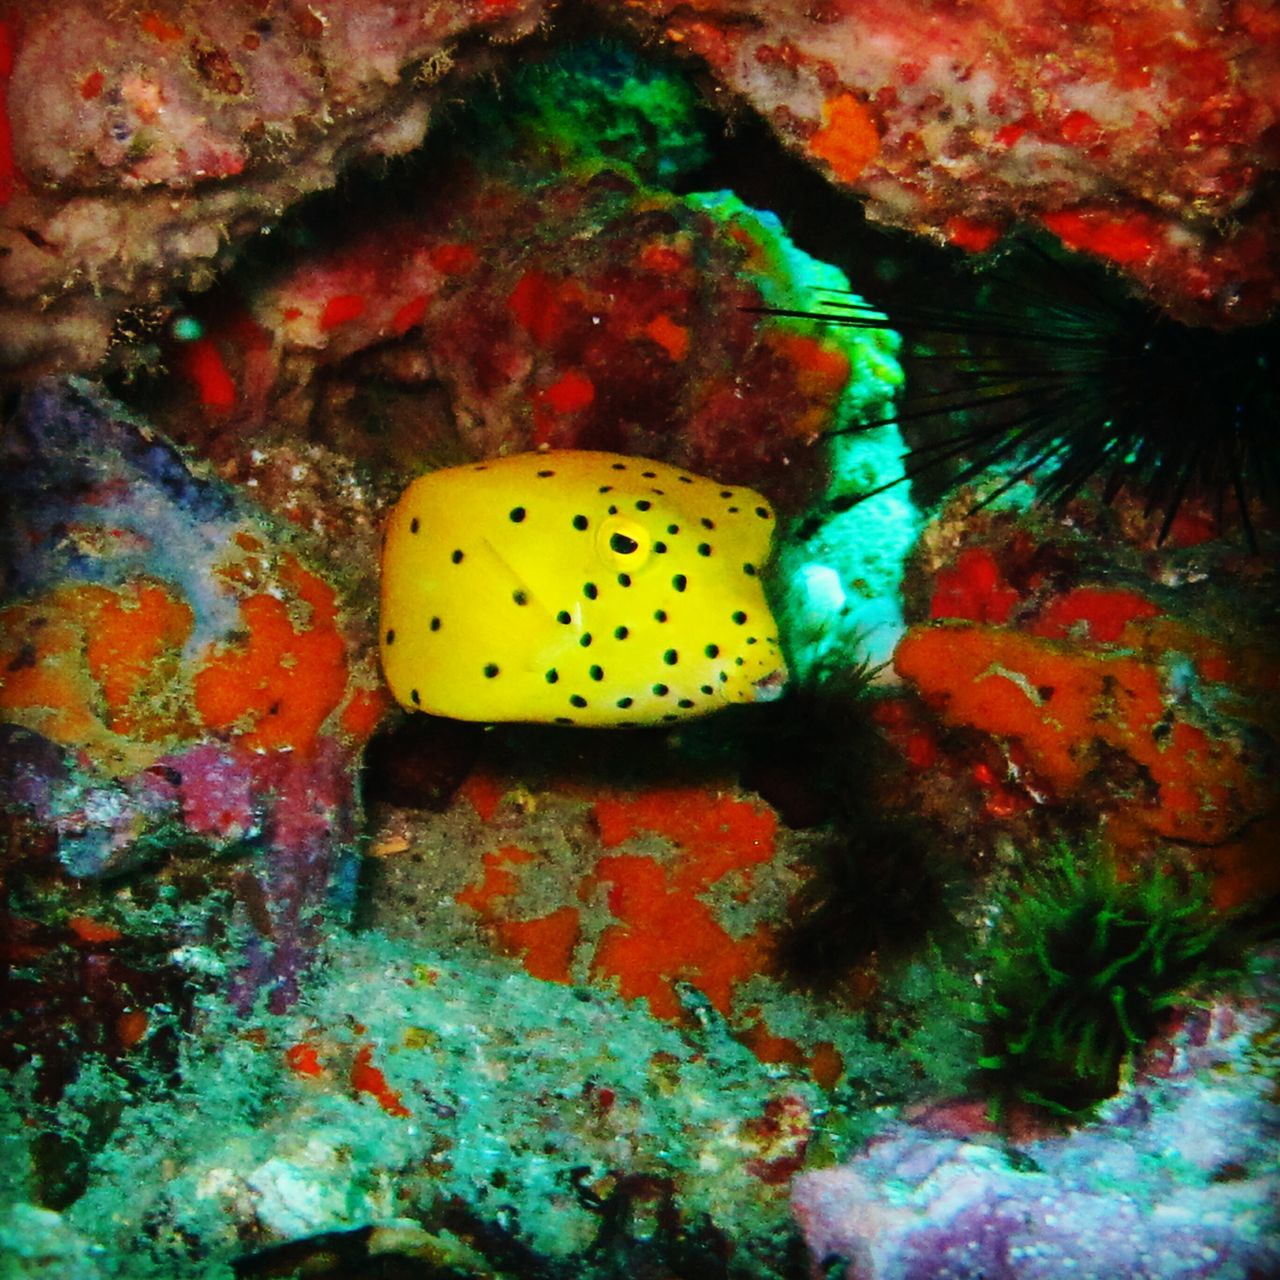 underwater, undersea, sea life, animals in the wild, animal themes, one animal, coral, reef, fish, sea, nature, no people, animal wildlife, water, swimming, close-up, beauty in nature, indoors, day